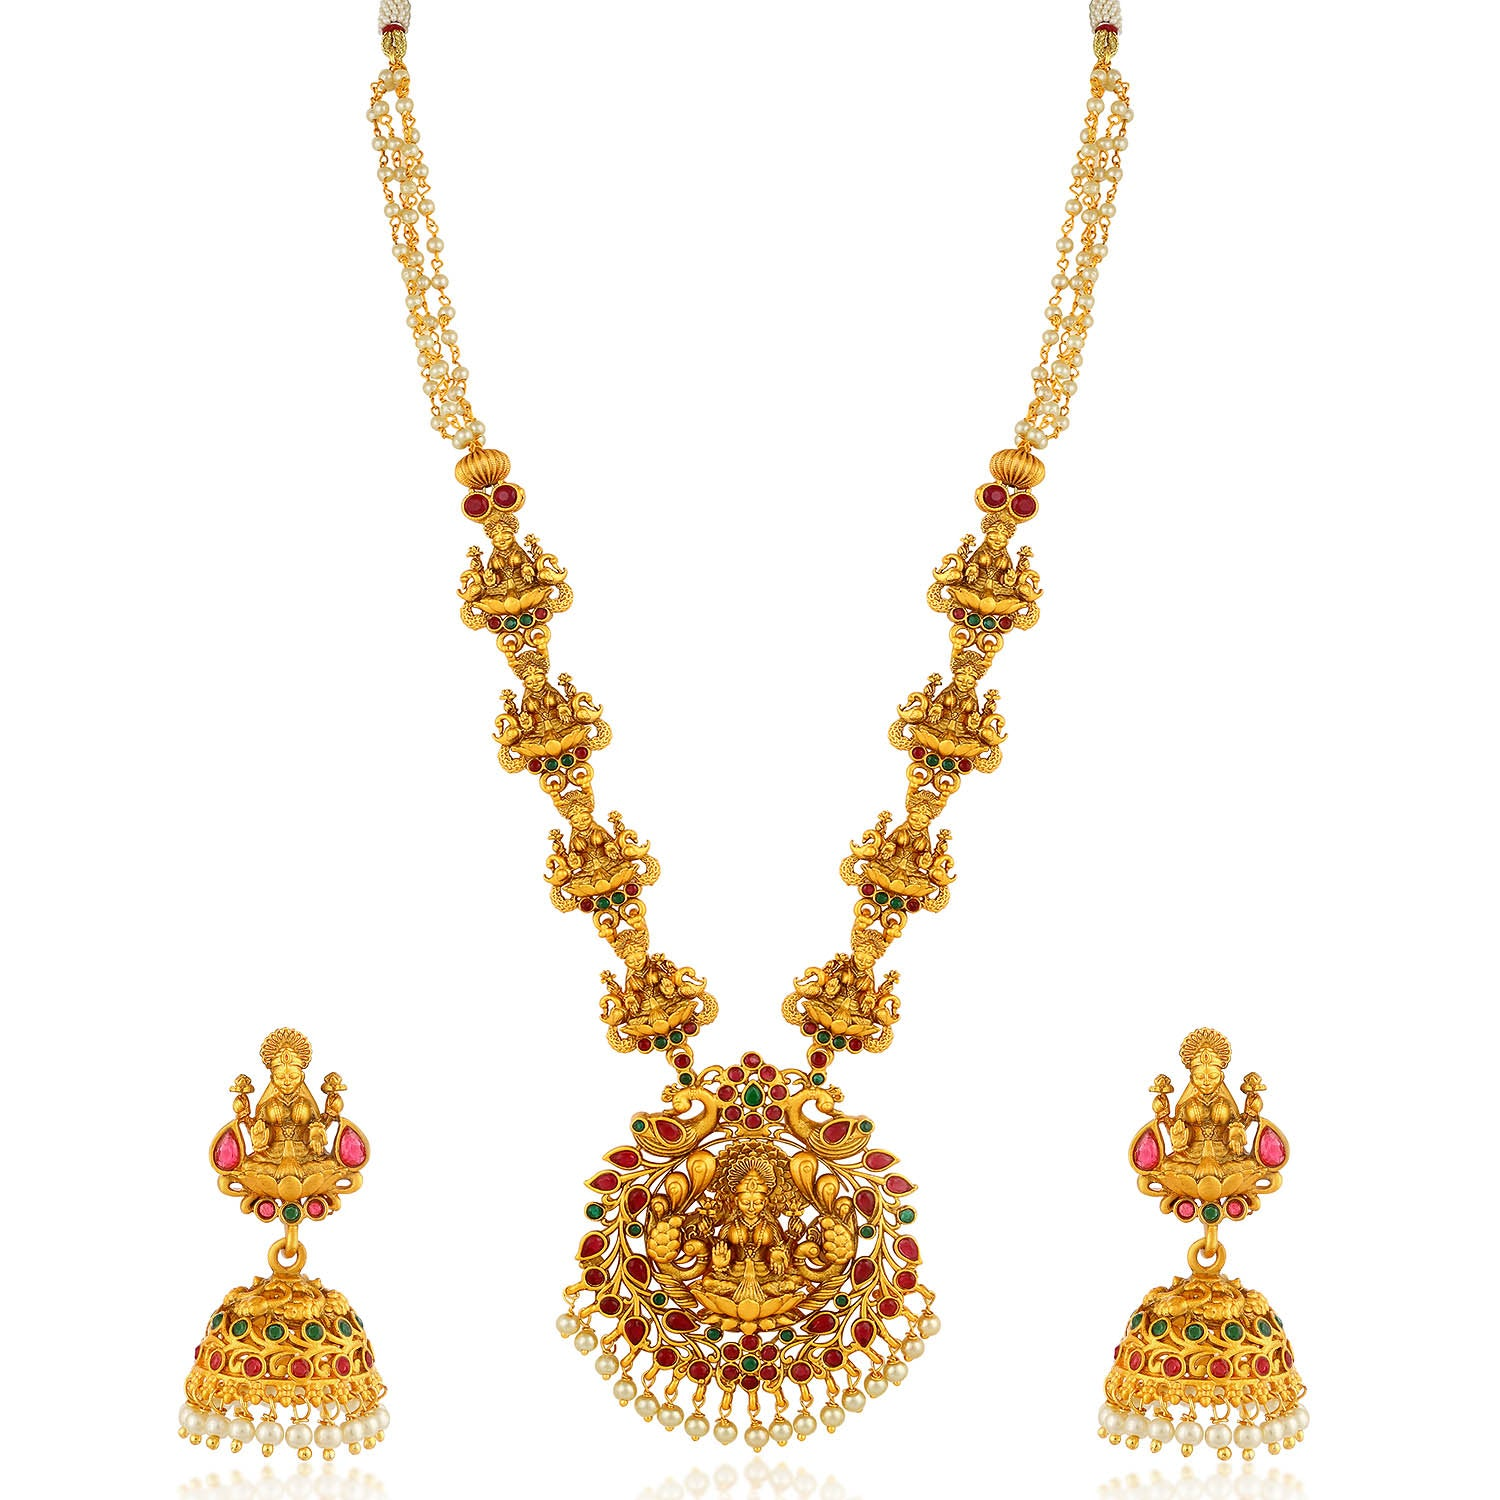 Sukkhi Glorious Pearl Gold Plated Laxmi Long Haram Necklace Set For Women-SUKKHI1-Necklace Set